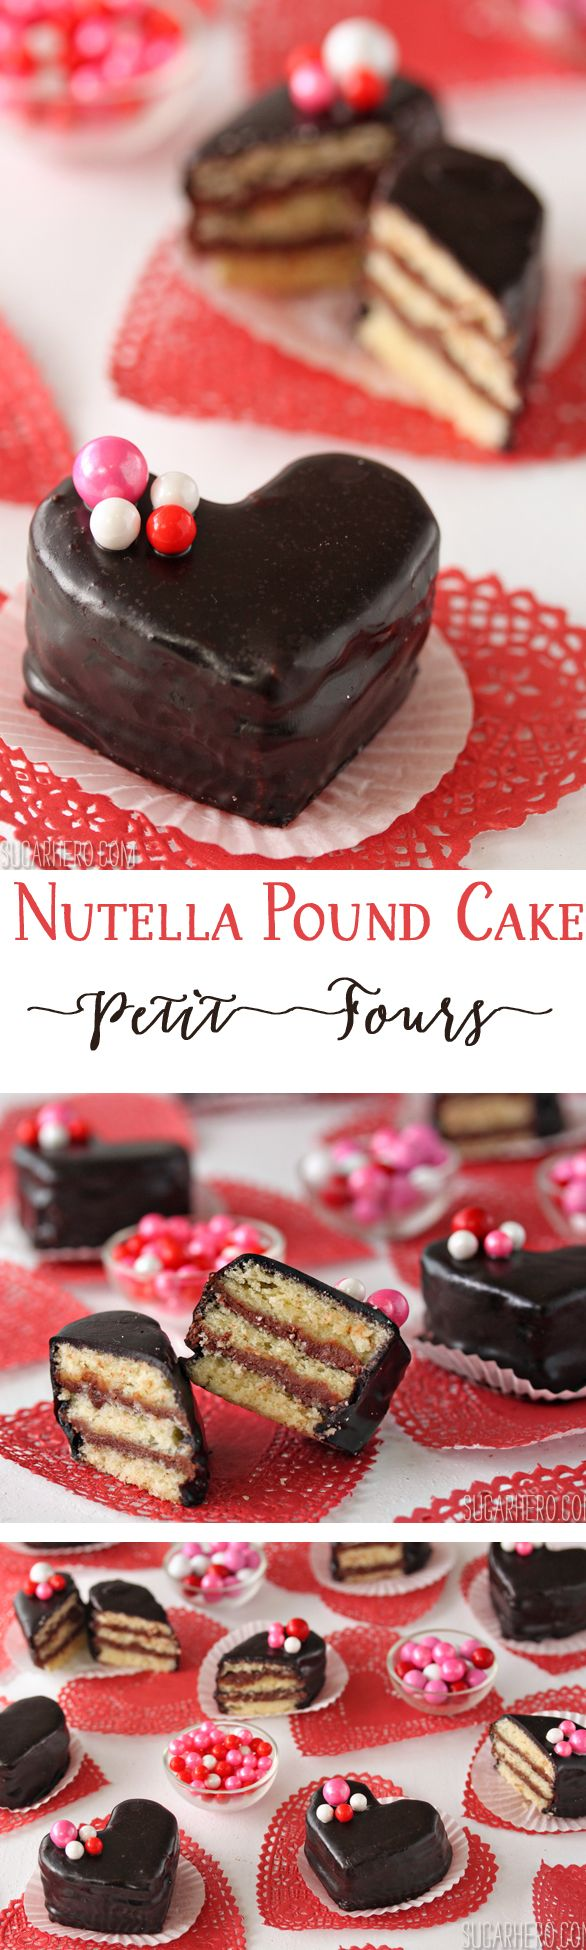 Nutella Pound Cake Petit Fours - easy and beautiful Nutella mini cakes, perfect for Valentine's Day! | From SugarHero.com